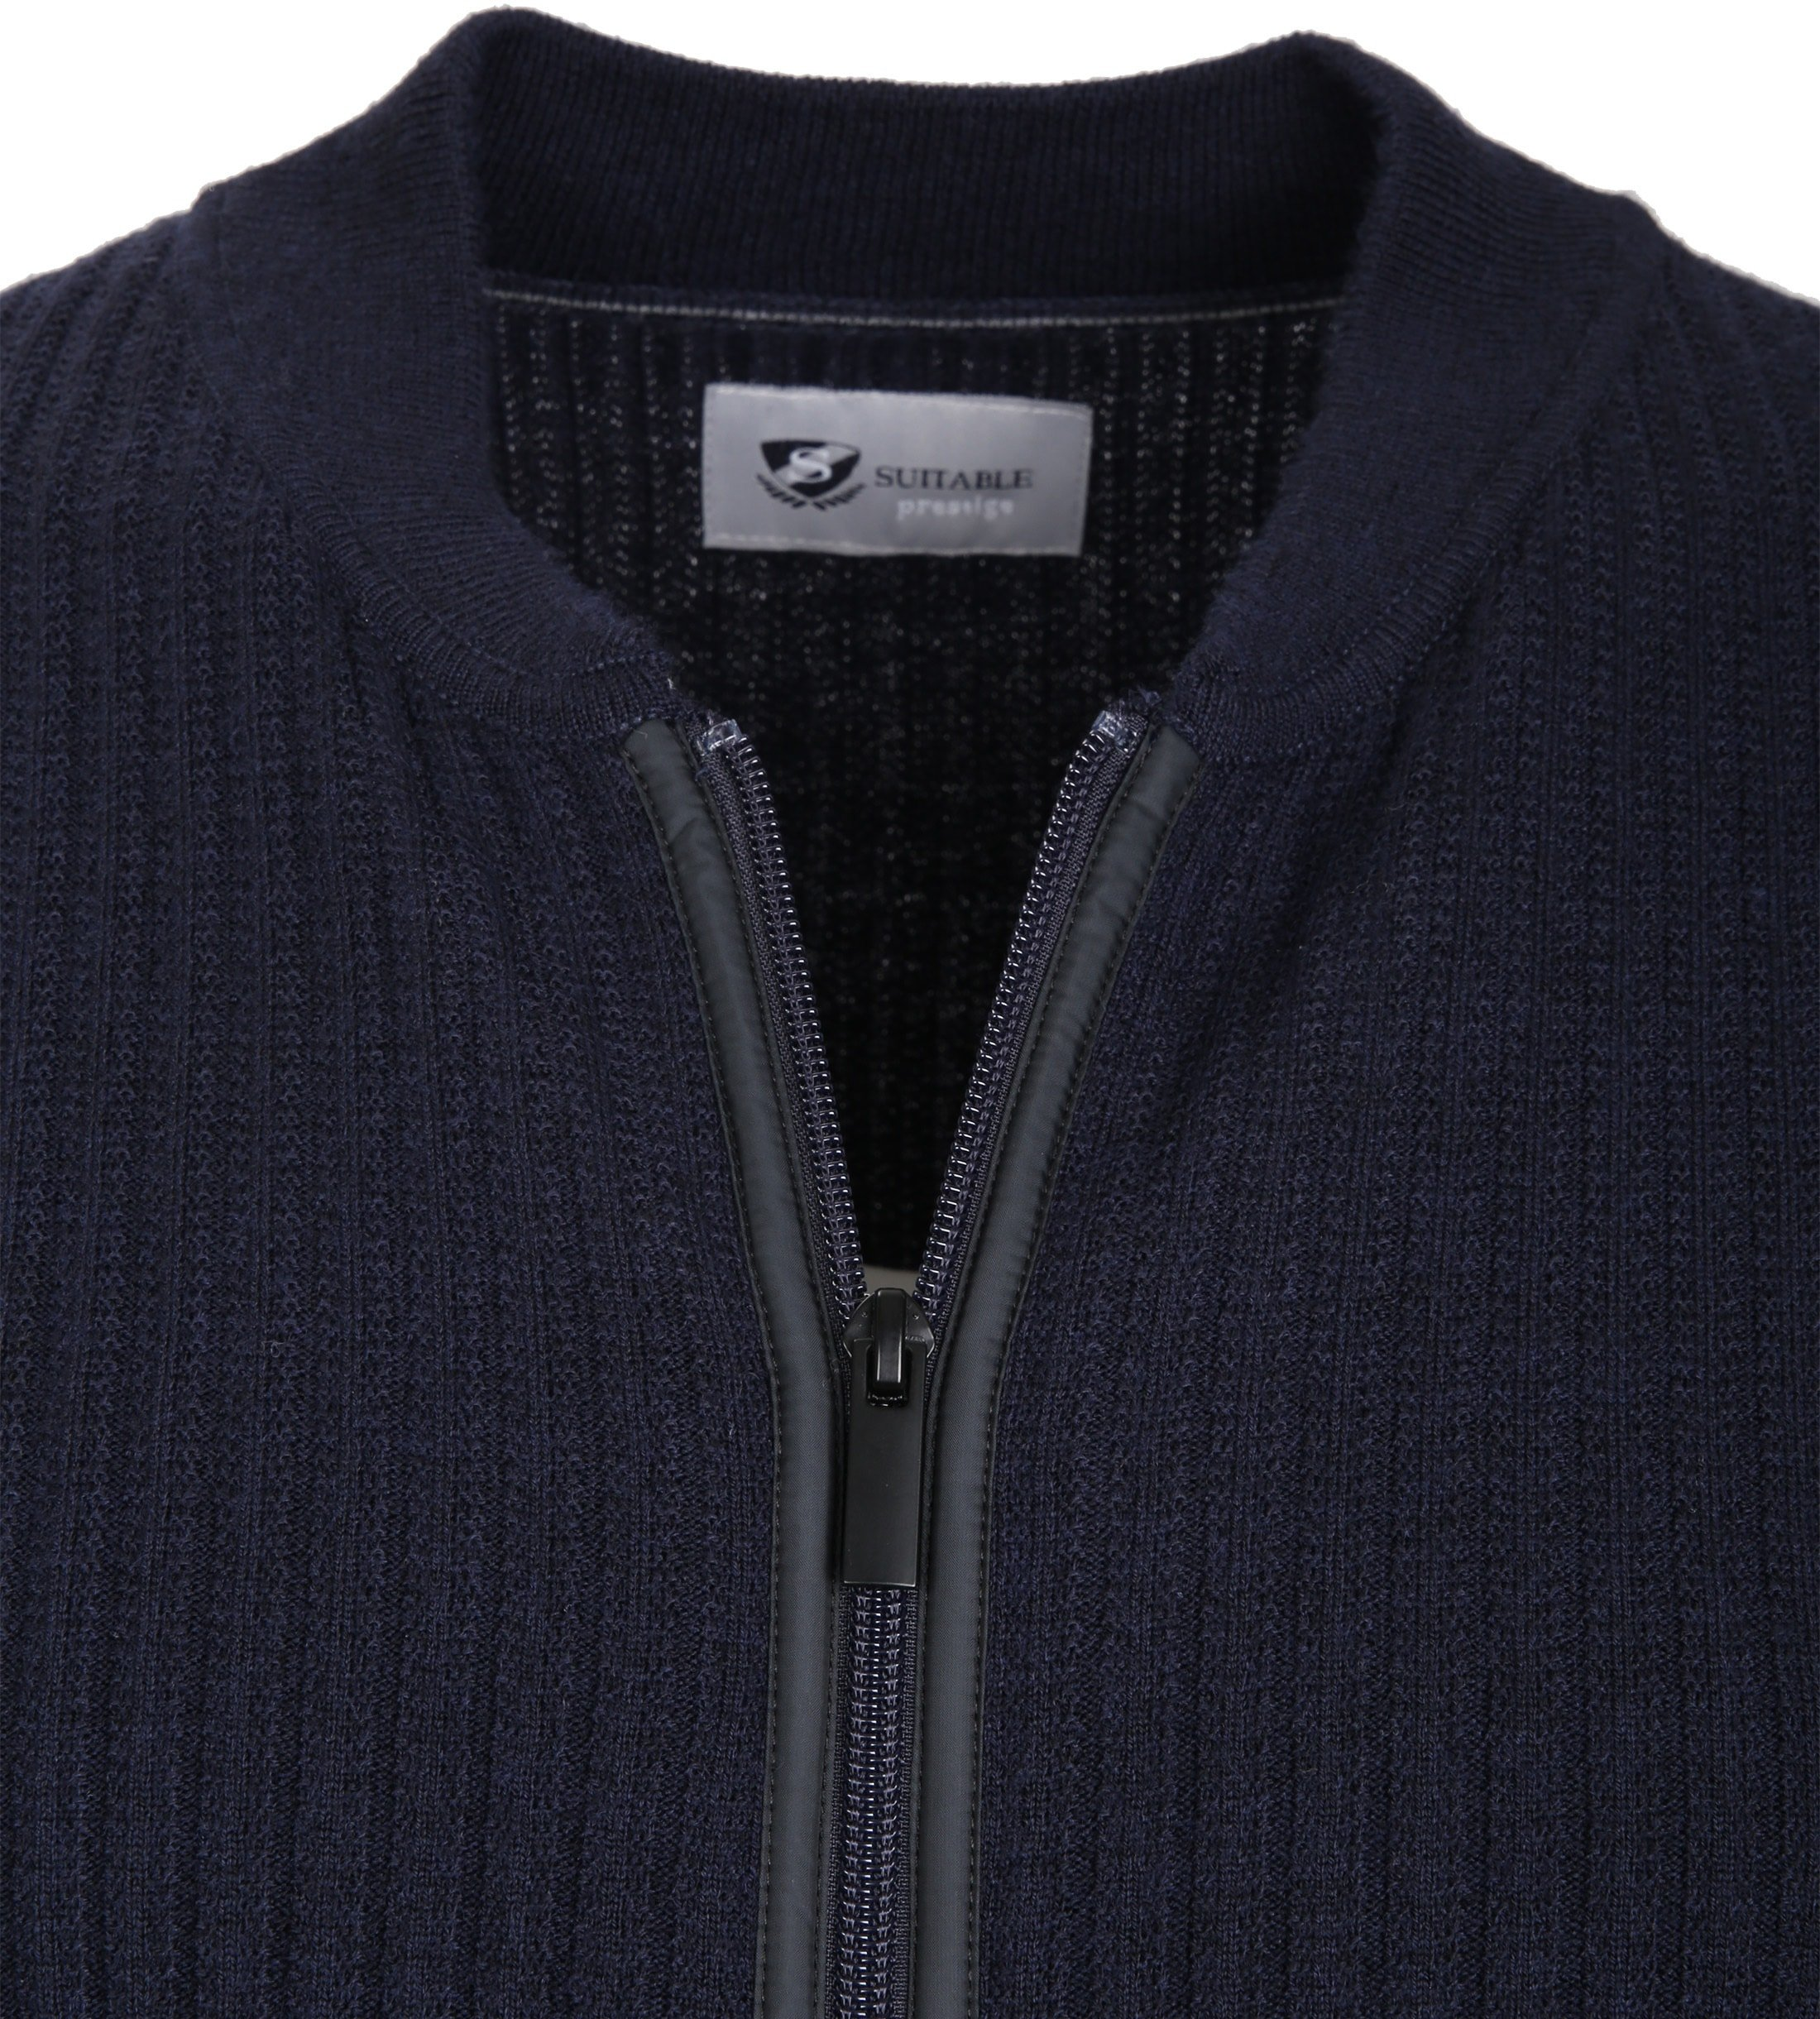 Suitable Prestige Cardigan Navy foto 1